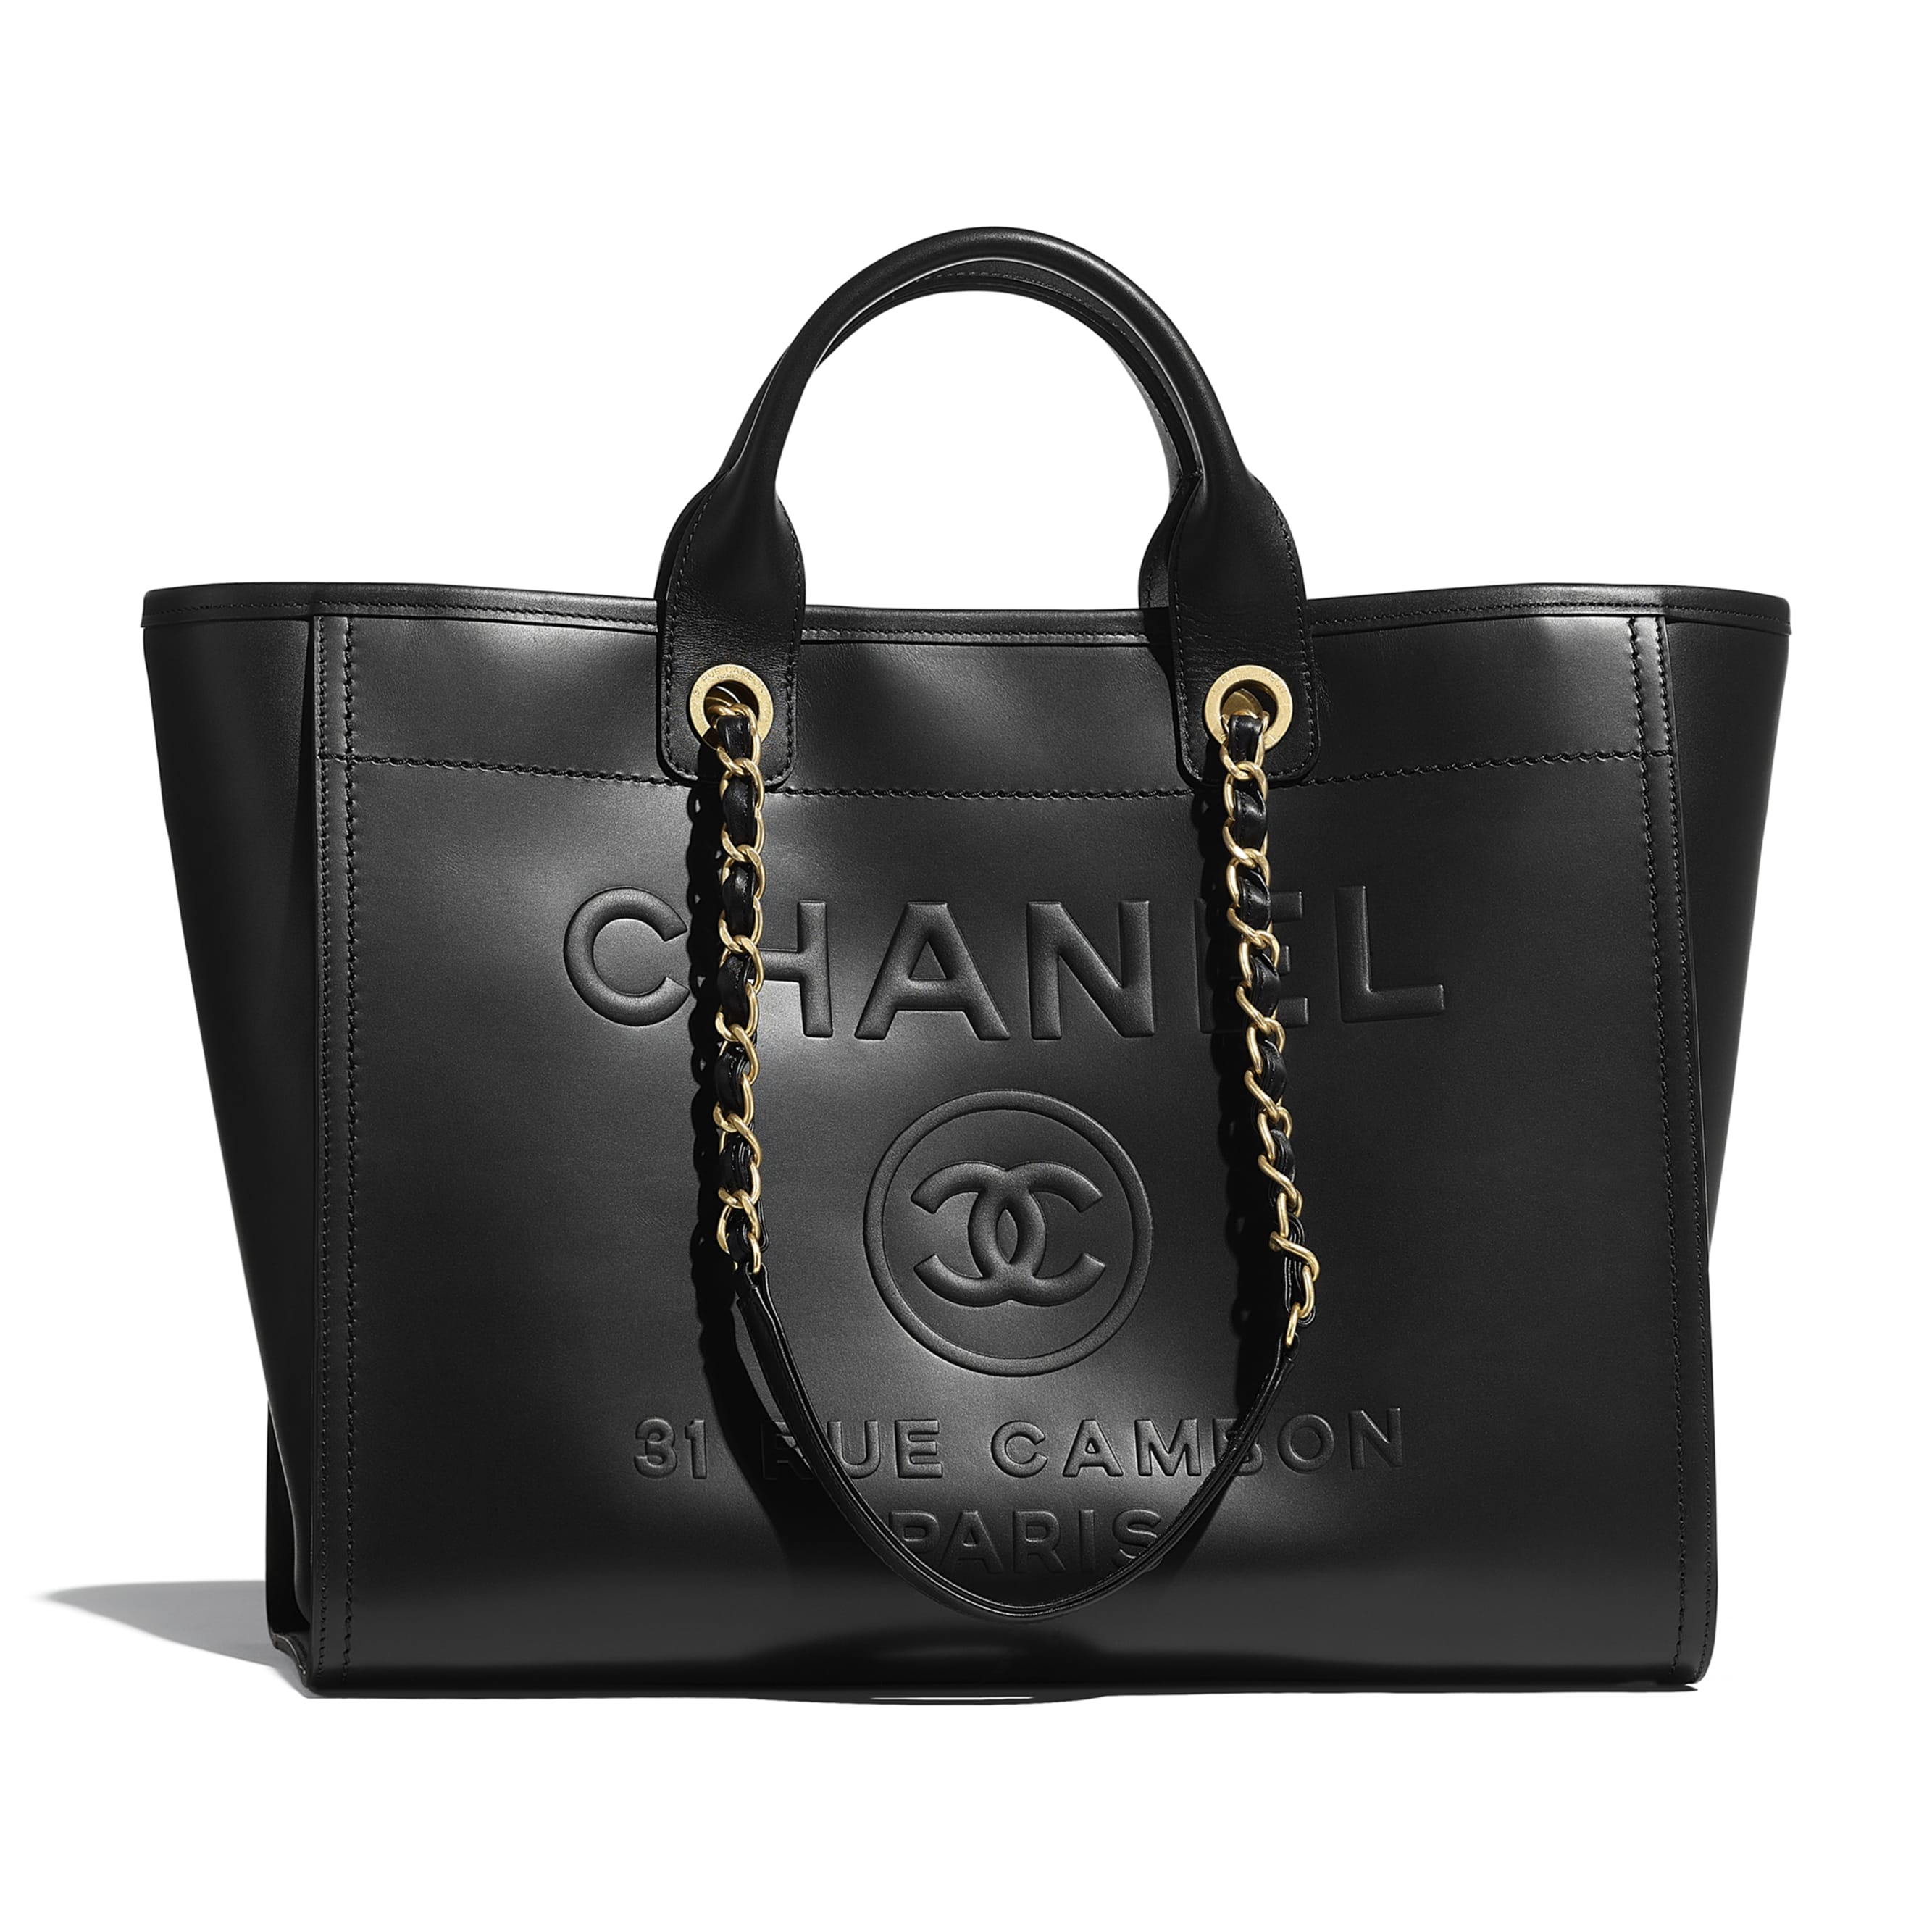 Large Tote - Black - Calfskin & Gold-Tone Metal - CHANEL - Default view - see standard sized version